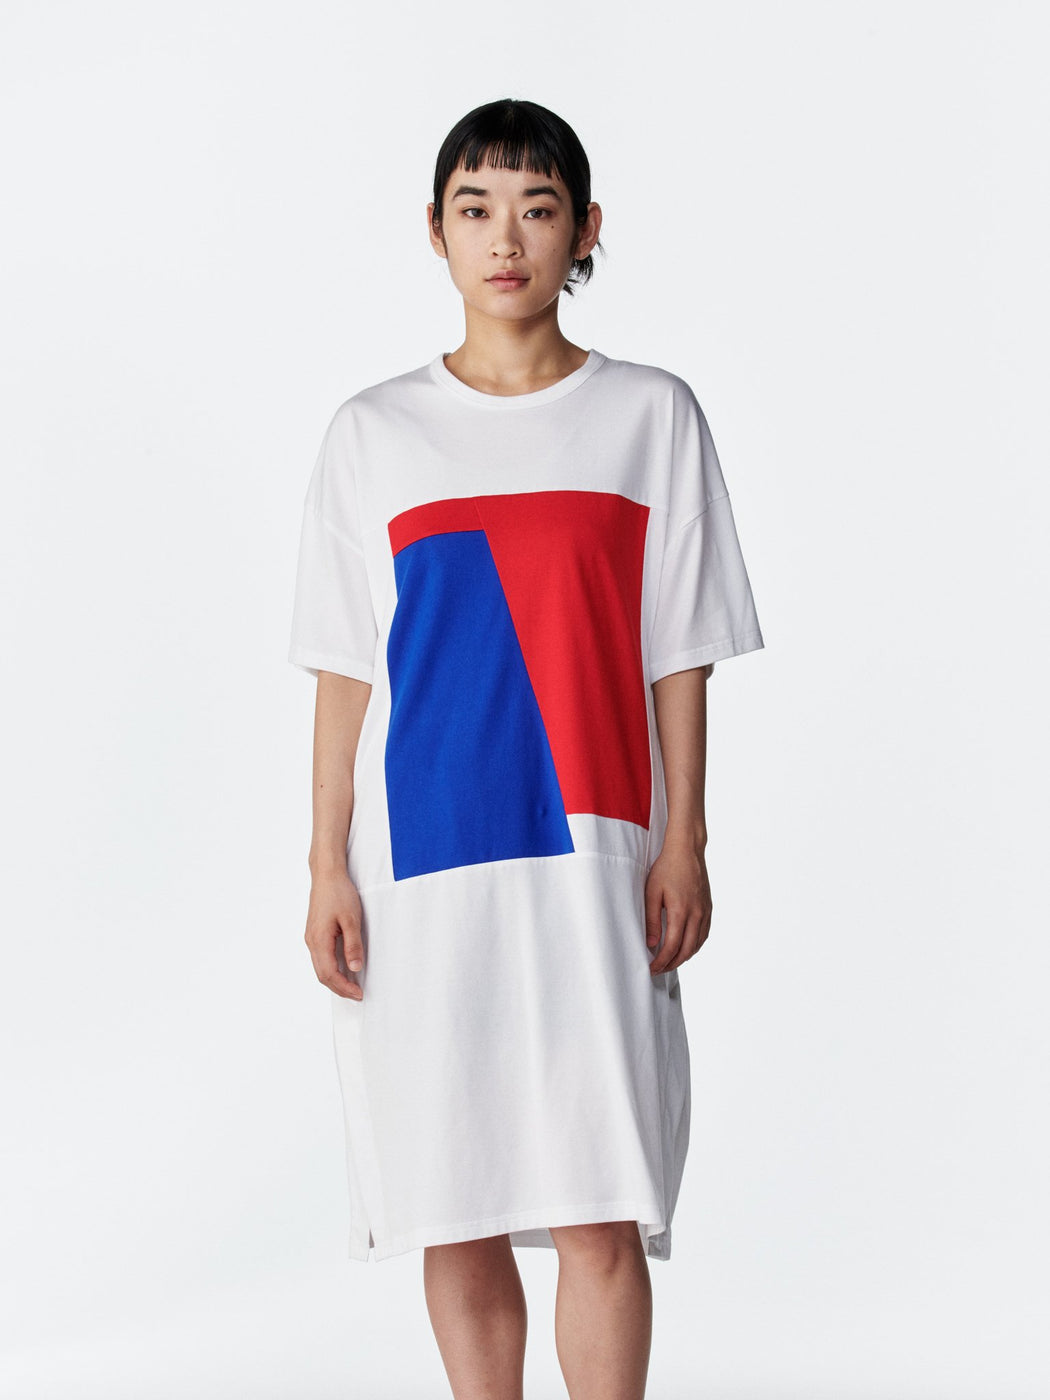 ALOYE Color Block Women's Short Sleeve T-shirt Dress White-Red-Blue